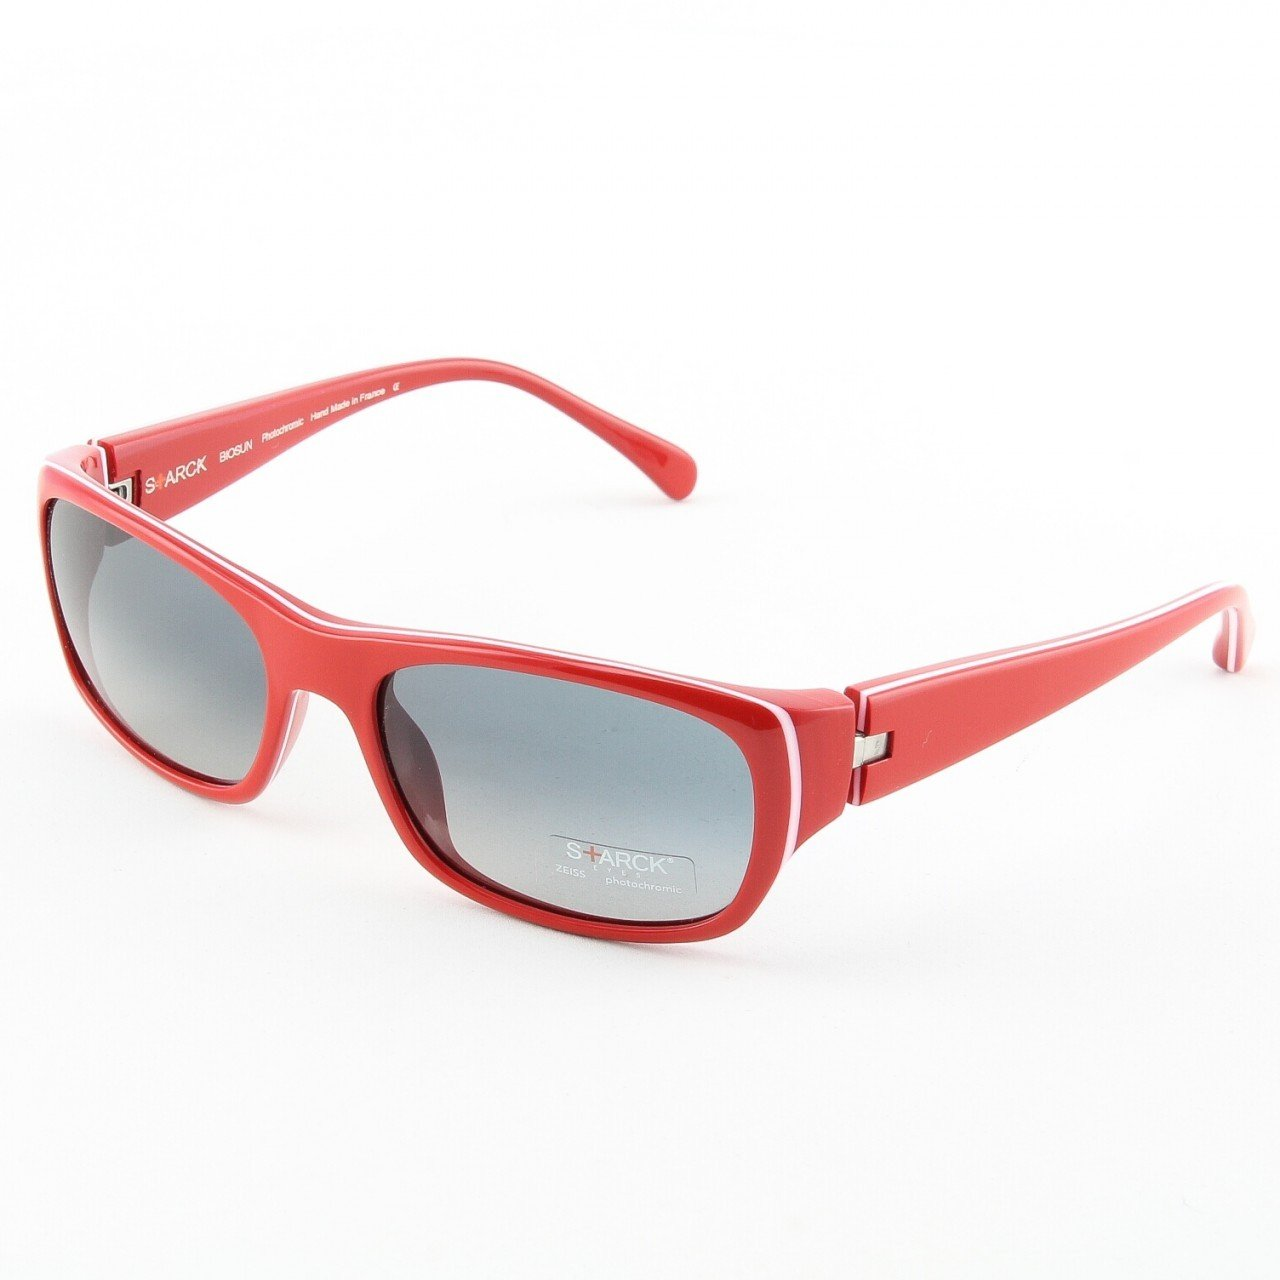 Starck Sunglasses P0650 Col. 27 U4 Red, White Stripe with Black Gradient Photochromic Lenses